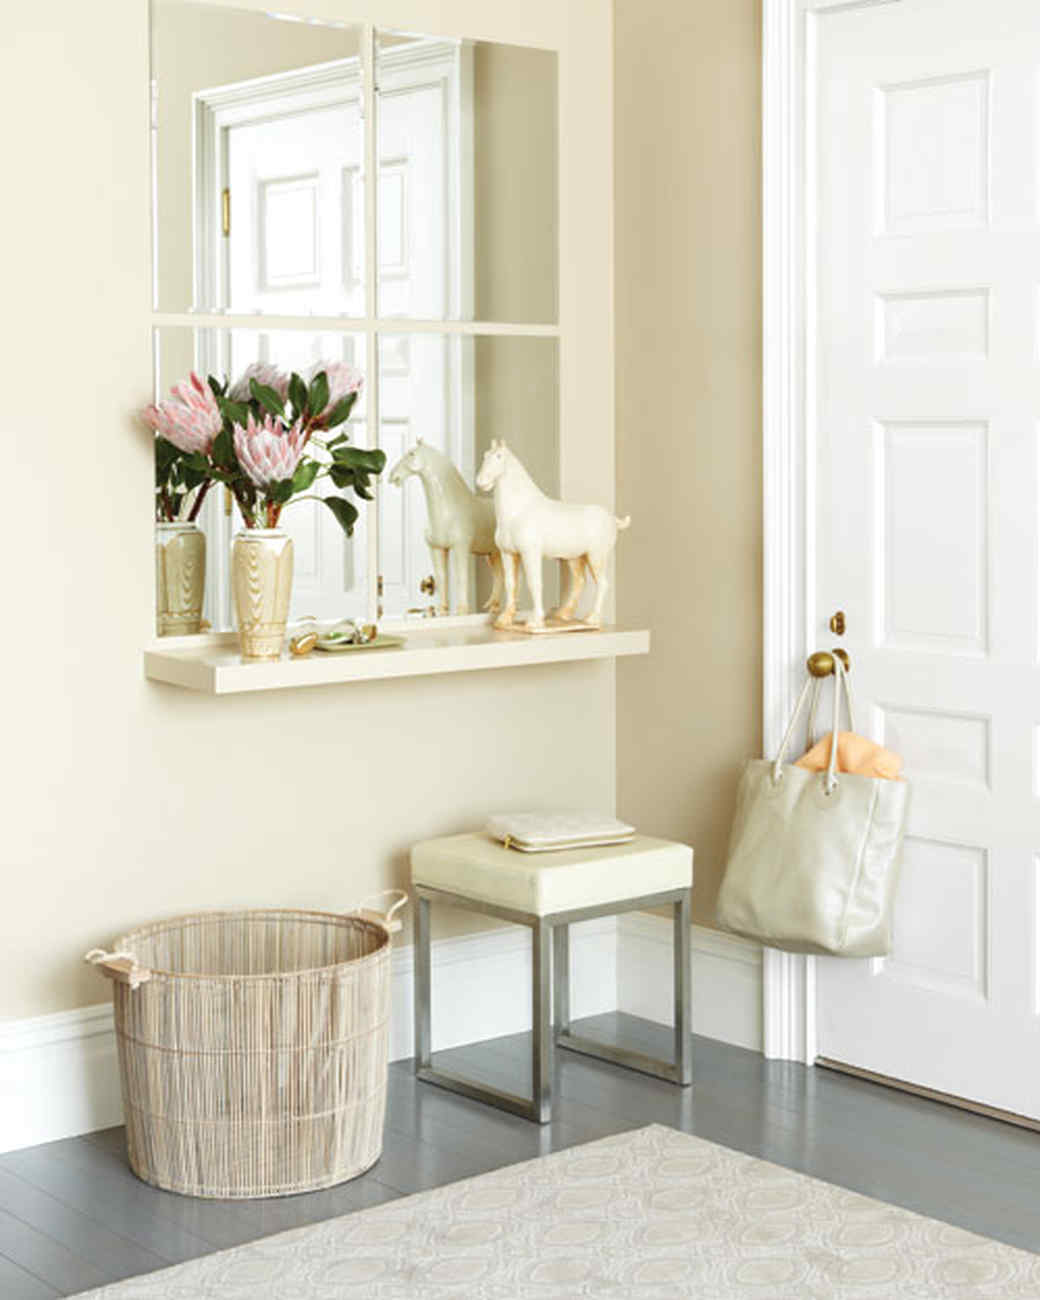 entryway organizing ideas martha stewart - Small Entryway Decor